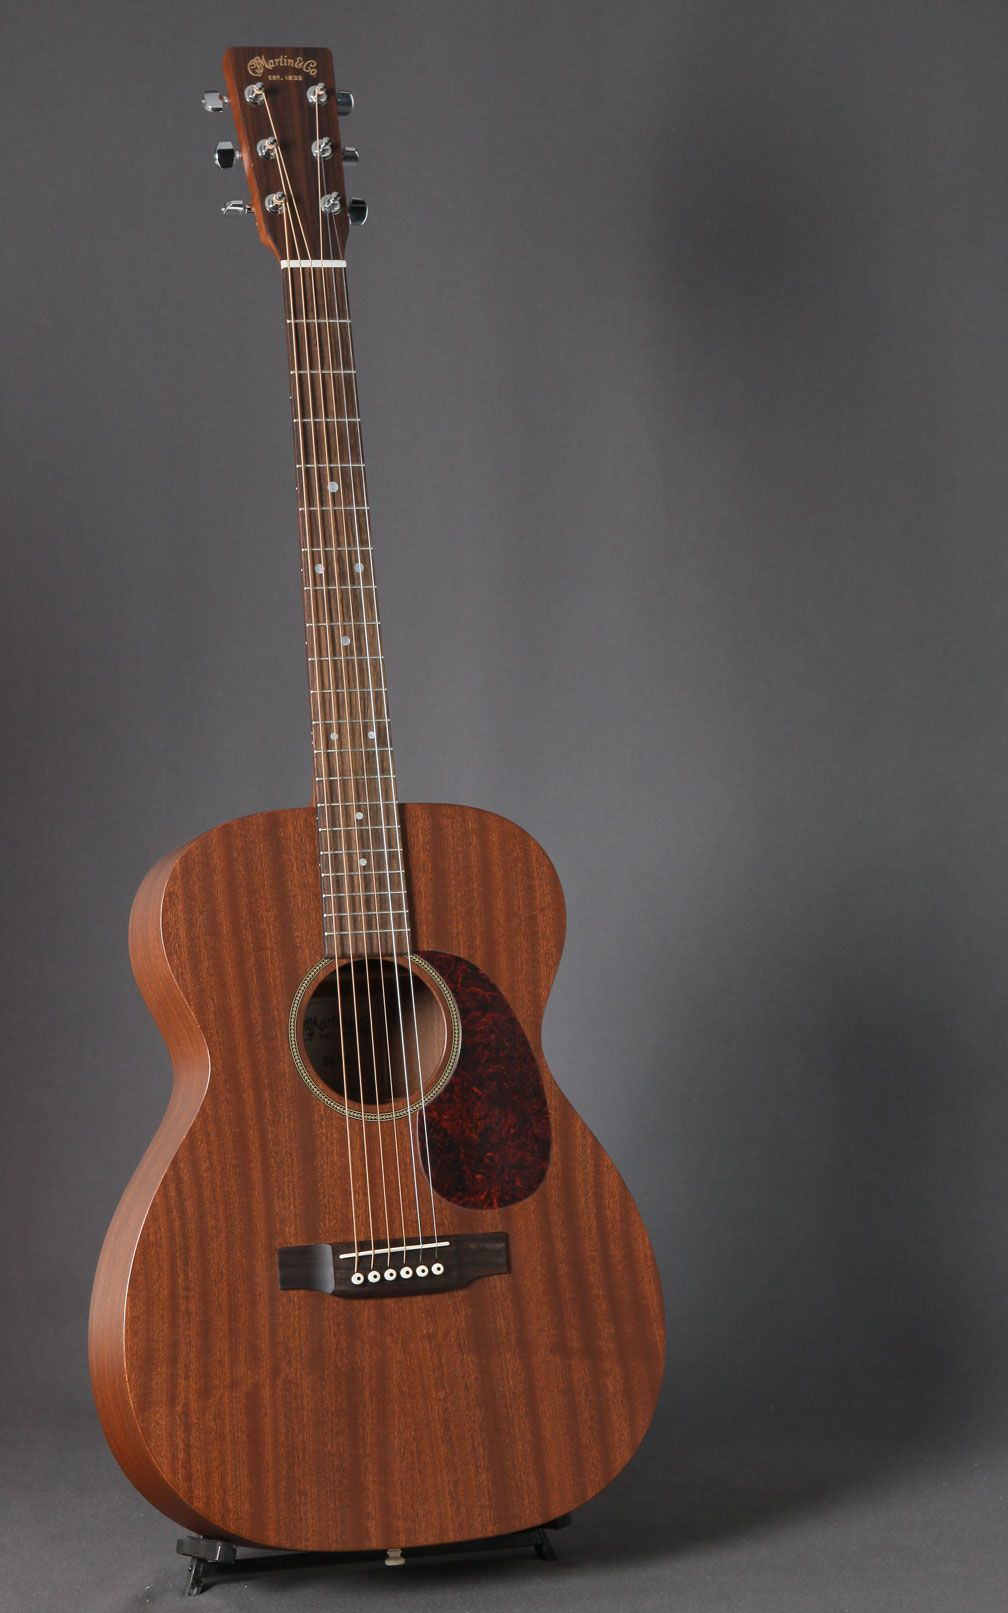 c f martin co 00 15 solid all mahogany acoustic guitar one of my favorite guitars i own. Black Bedroom Furniture Sets. Home Design Ideas